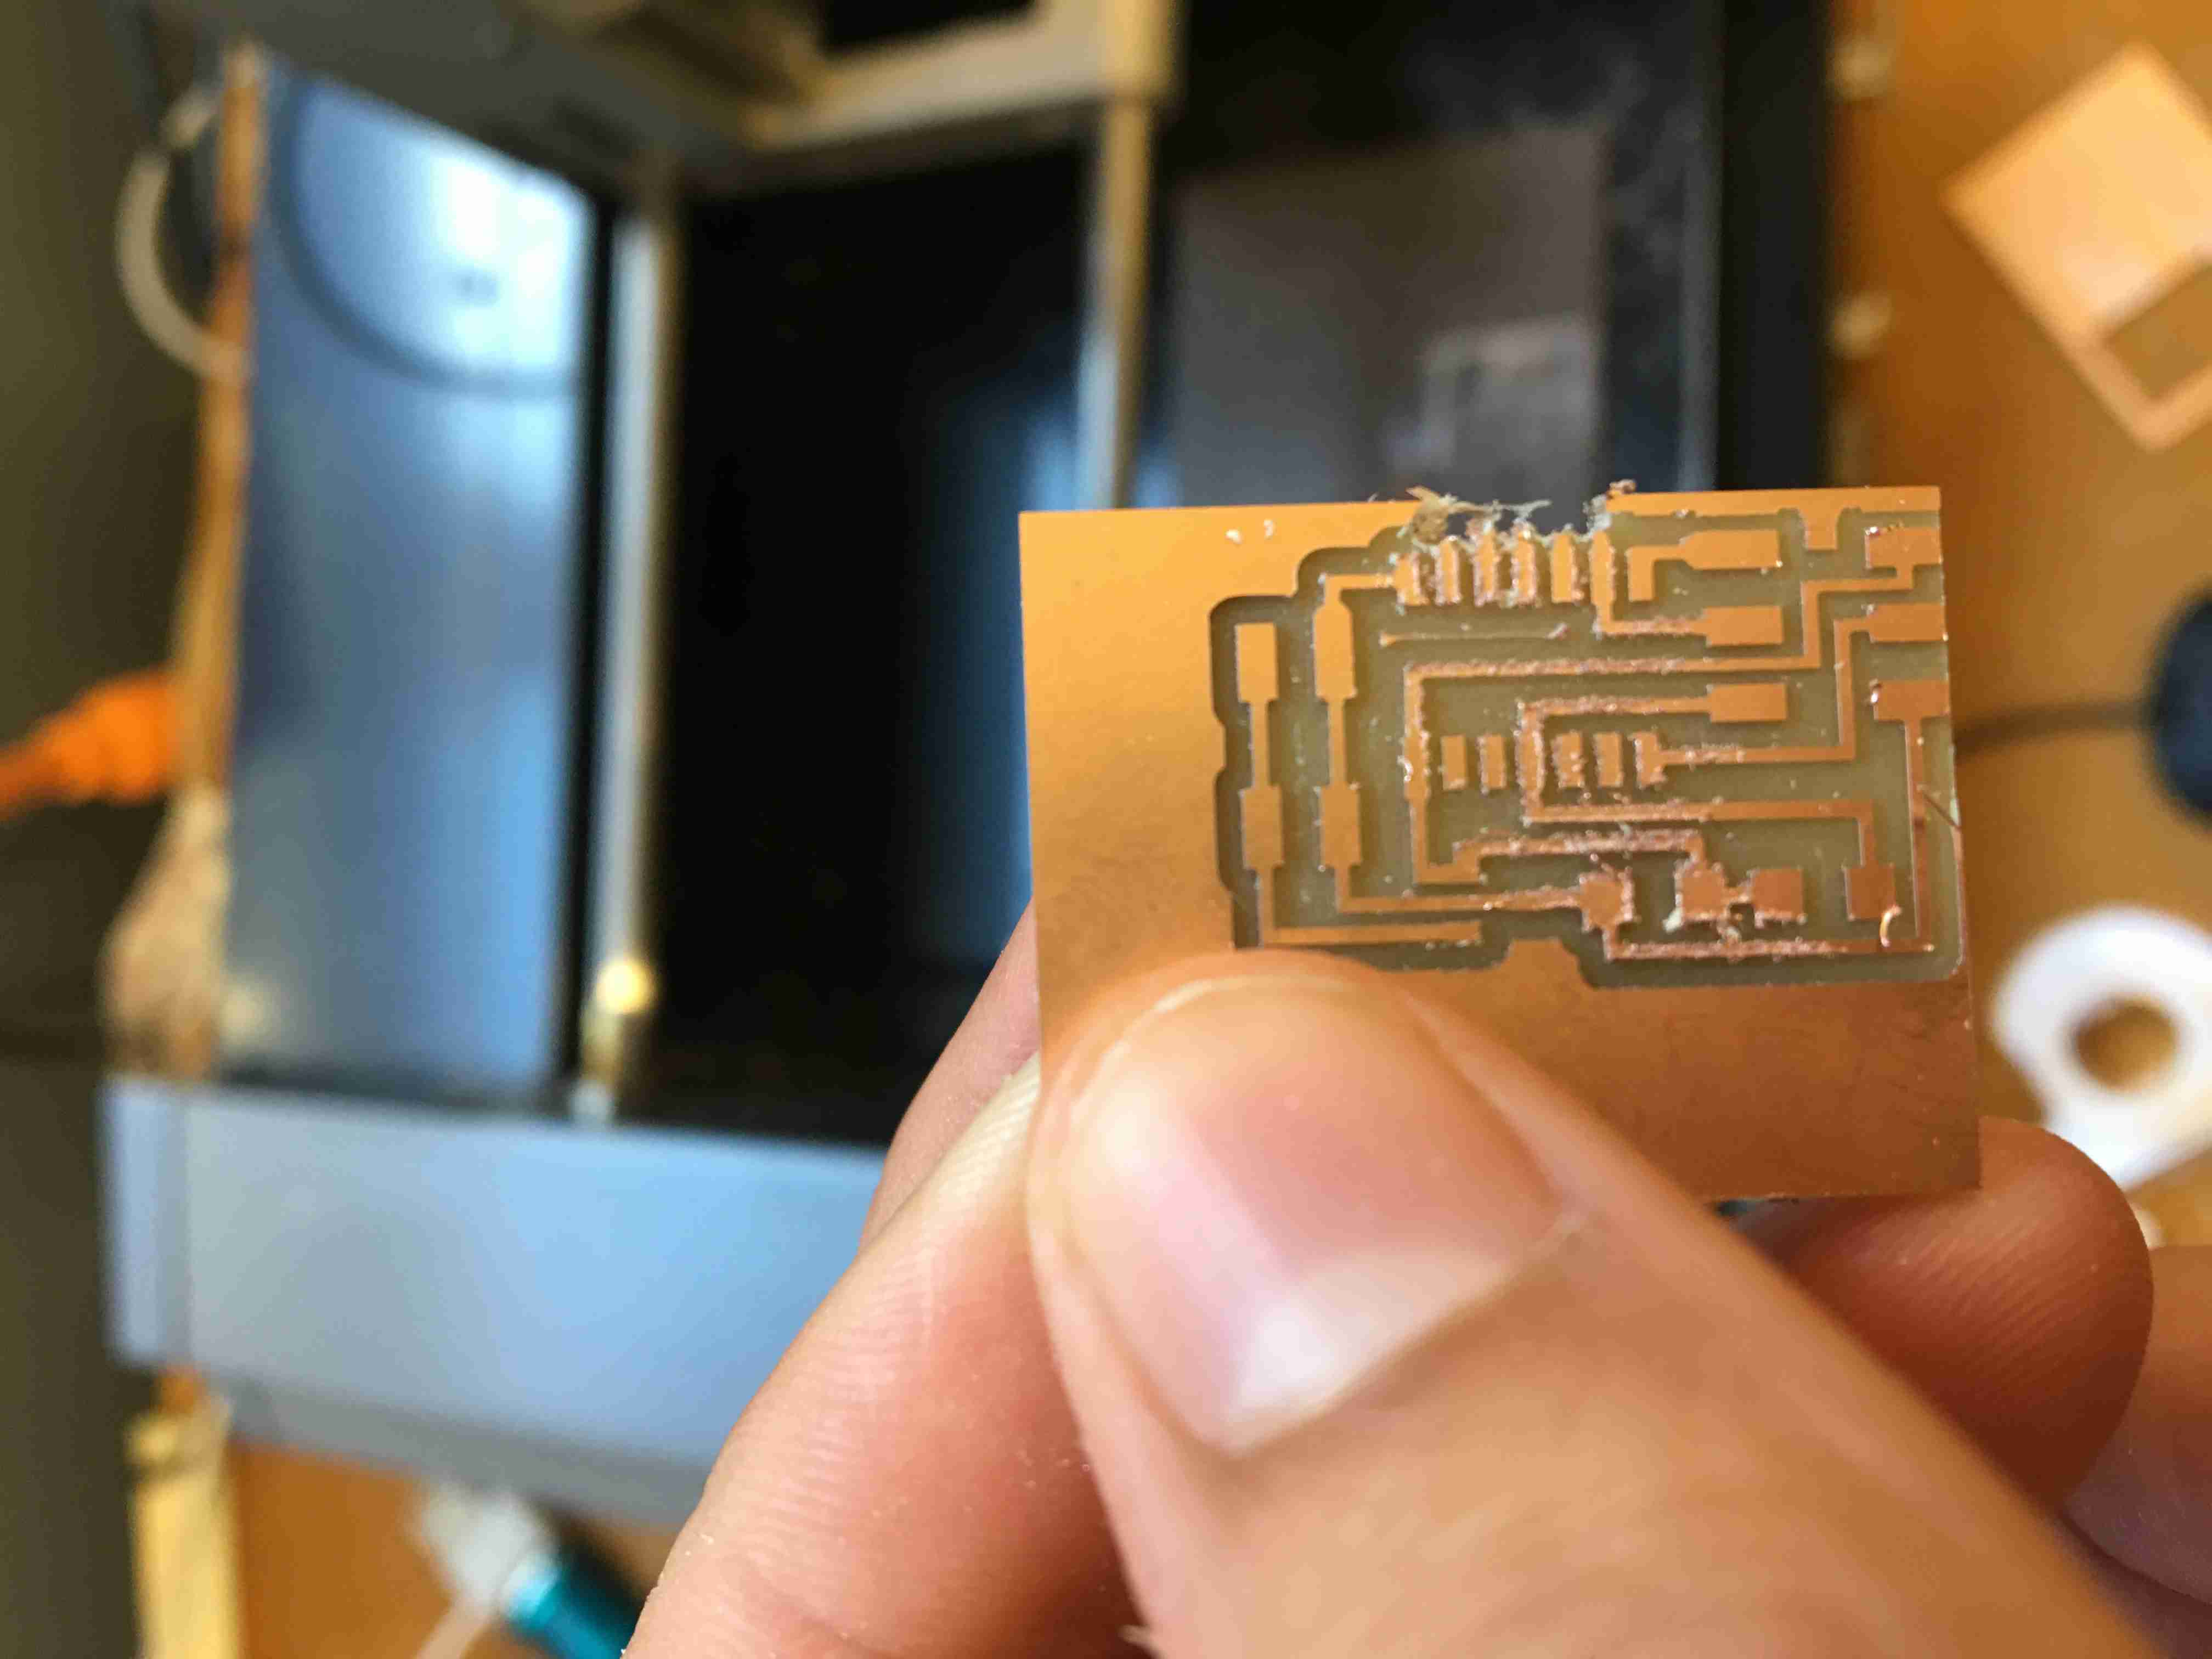 Harnek Gulati Laser Cutting Machine For Printed Circuit Boards With Inline Measuring We Started Out Milling The Board I Wanted To Try Backside But It Became Really Tough